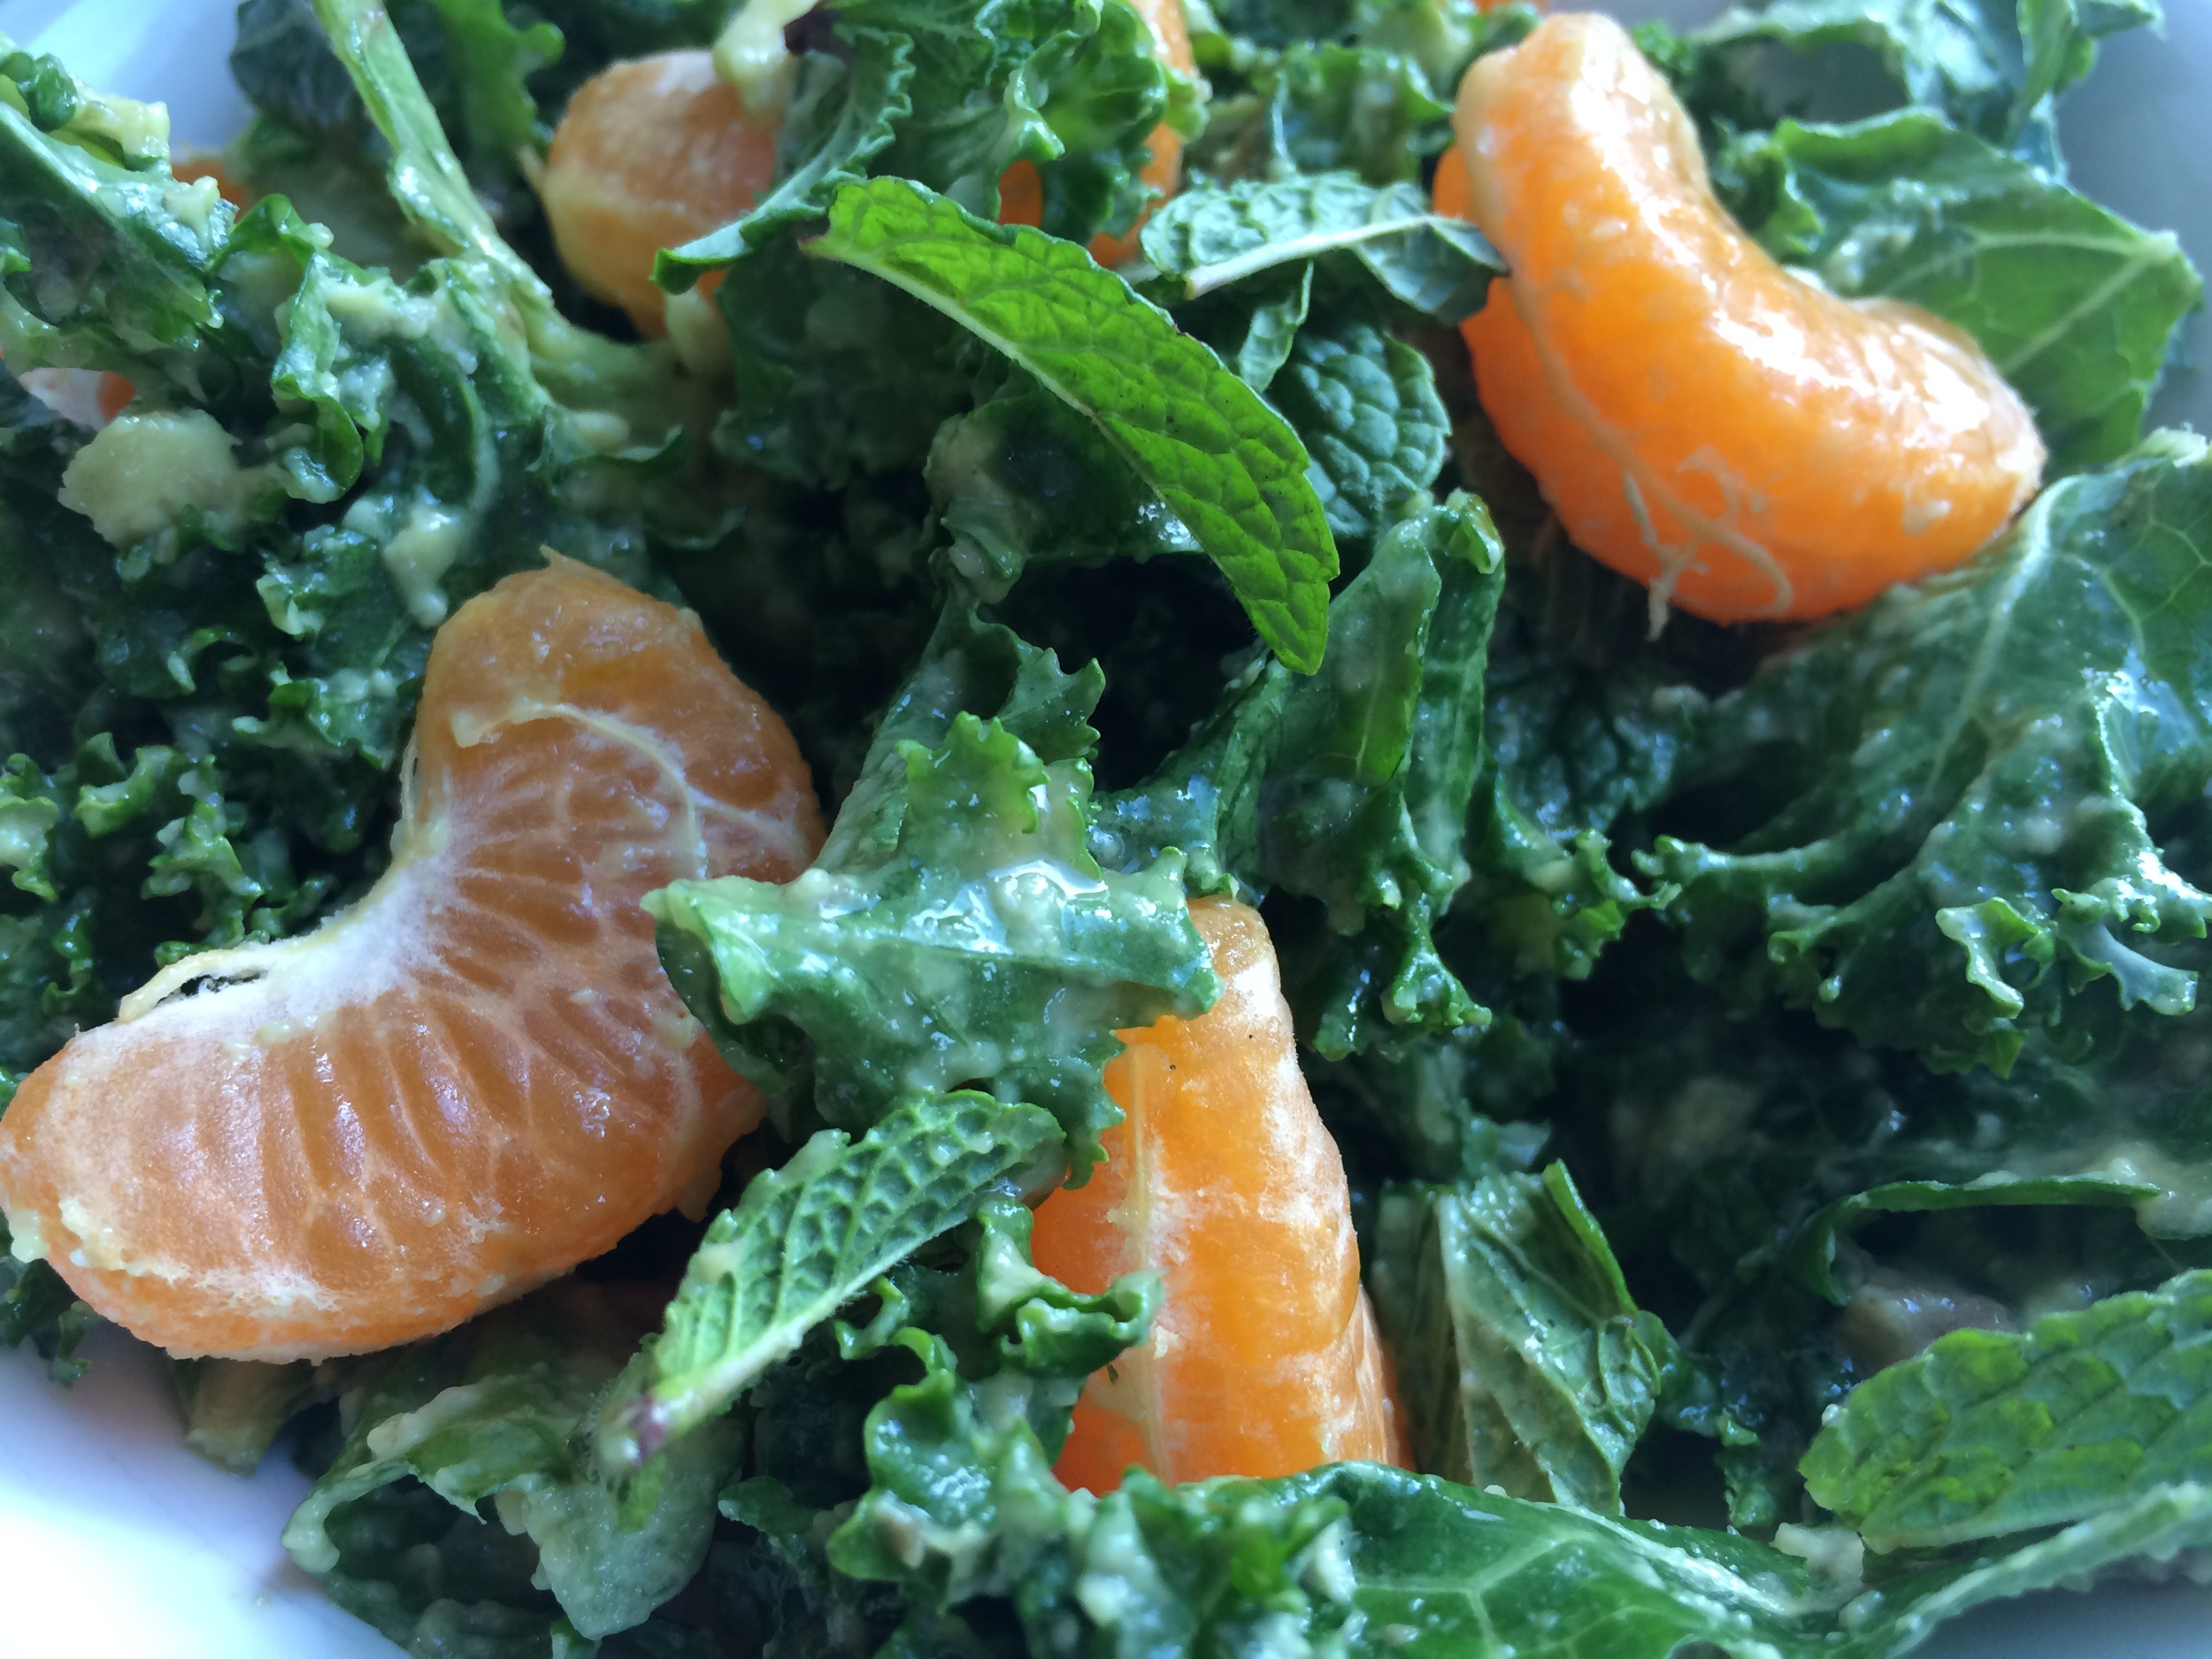 Mandarin Mint Kale Salad   This salad is gorgeous and mouth watering. But don't think you can treat it like other bagged salad greens.